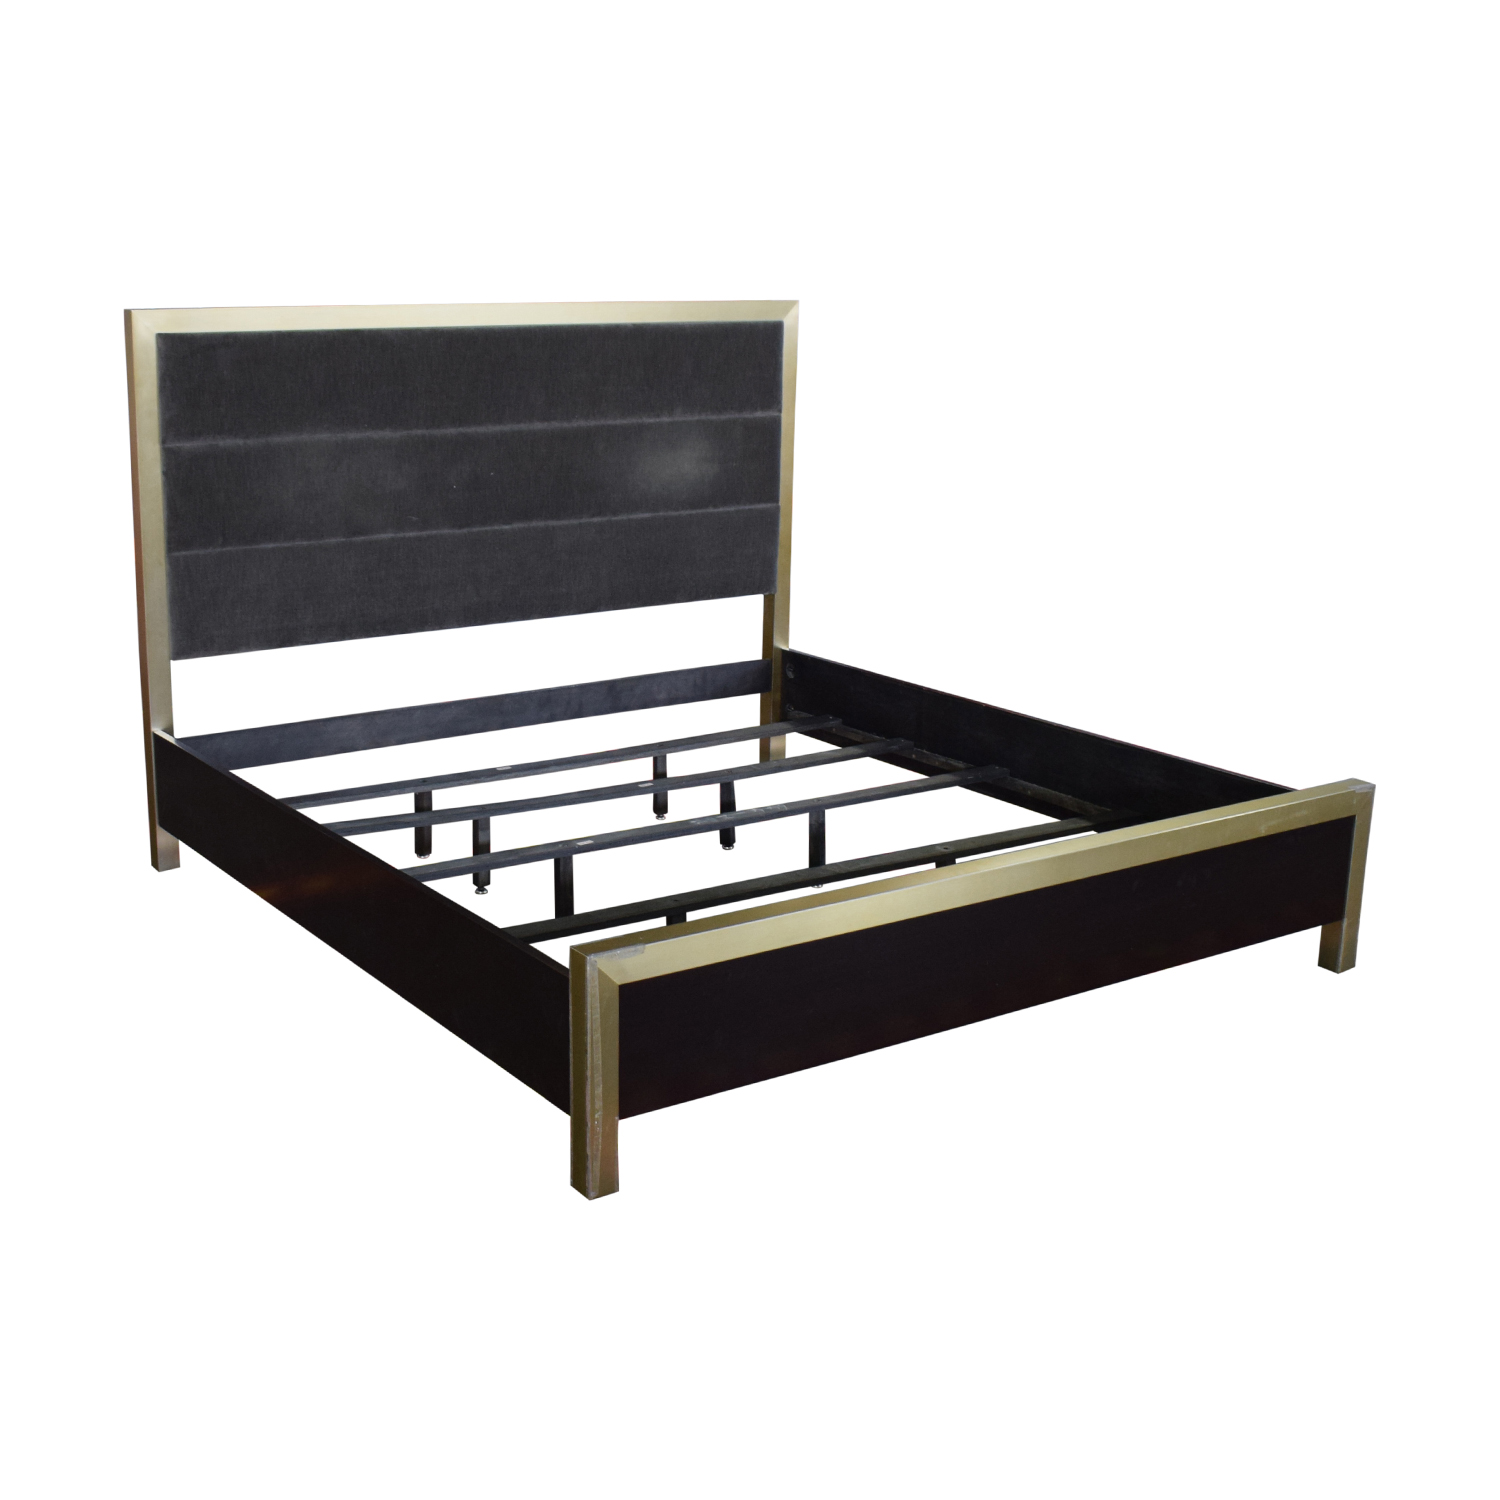 Macy's Jameson King Bed Frame / Beds